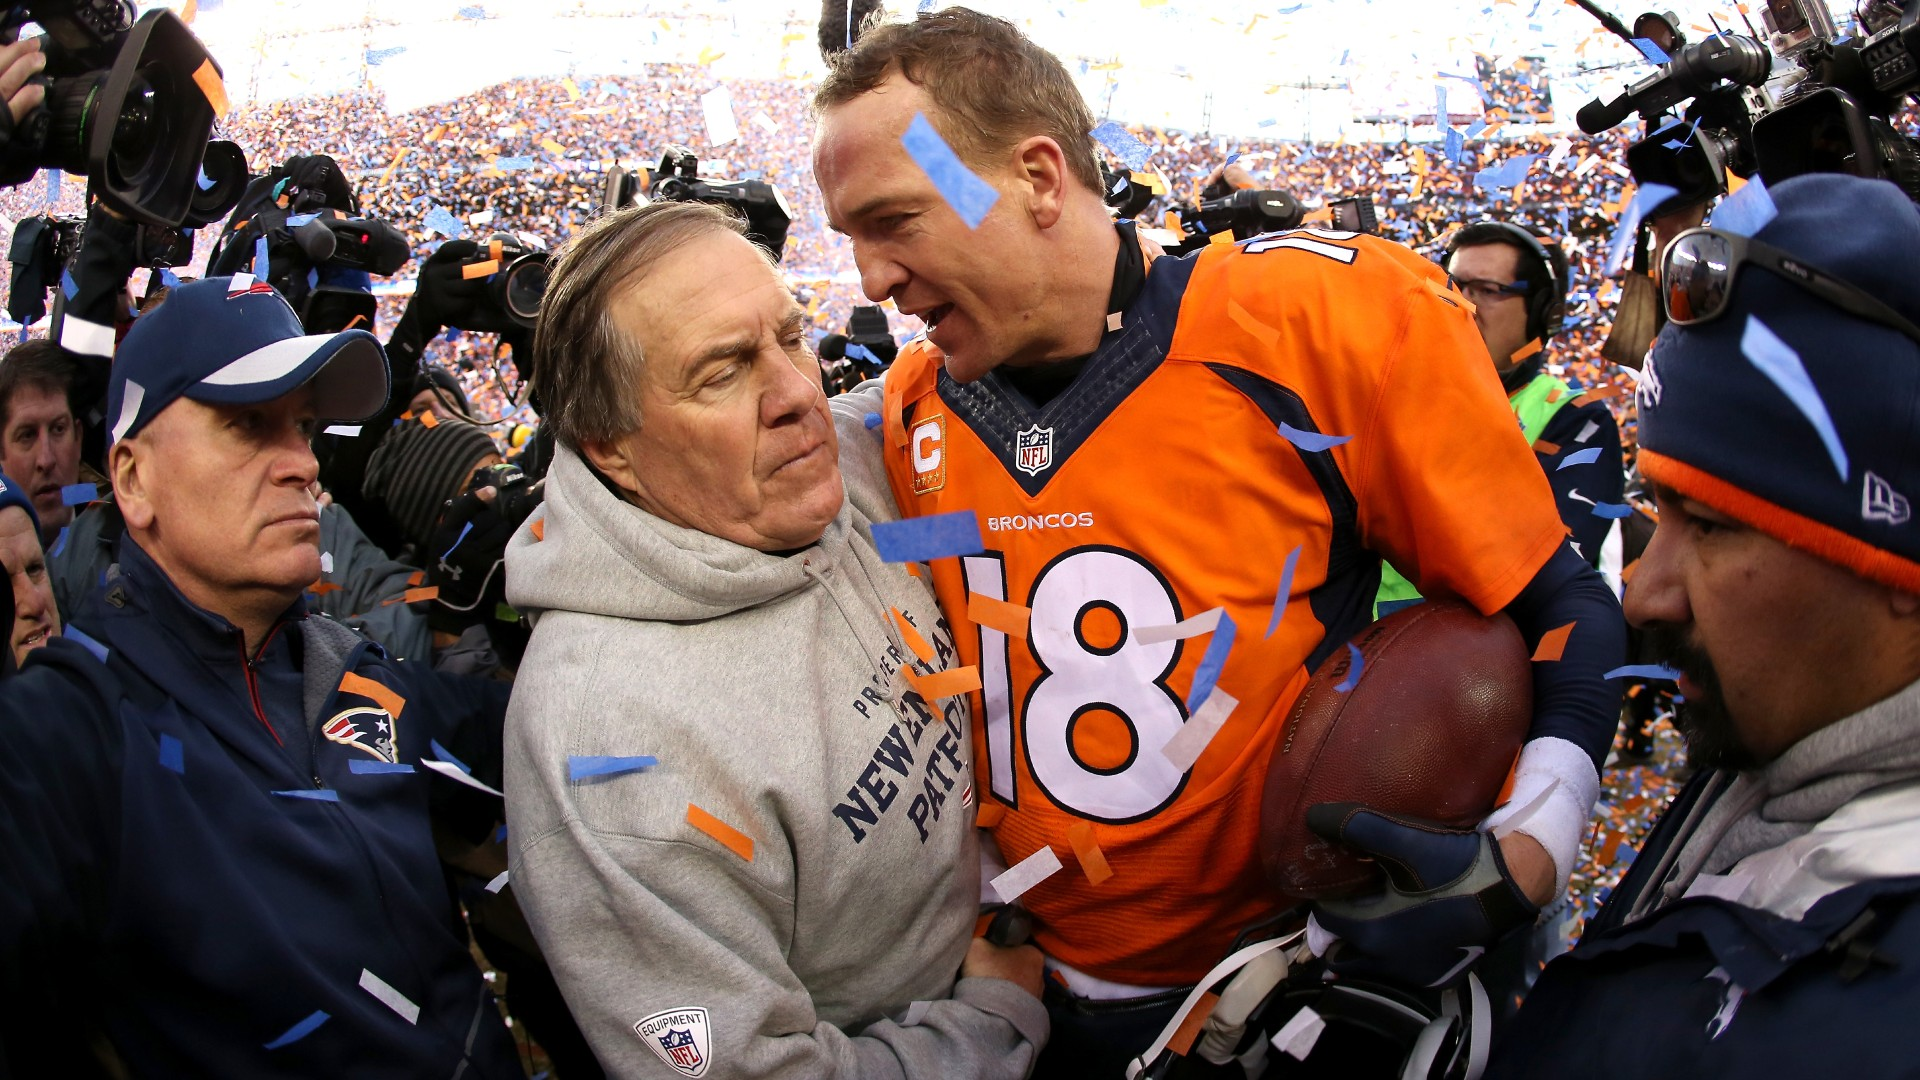 Bill Belichick explains what made Peyton Manning so difficult to face